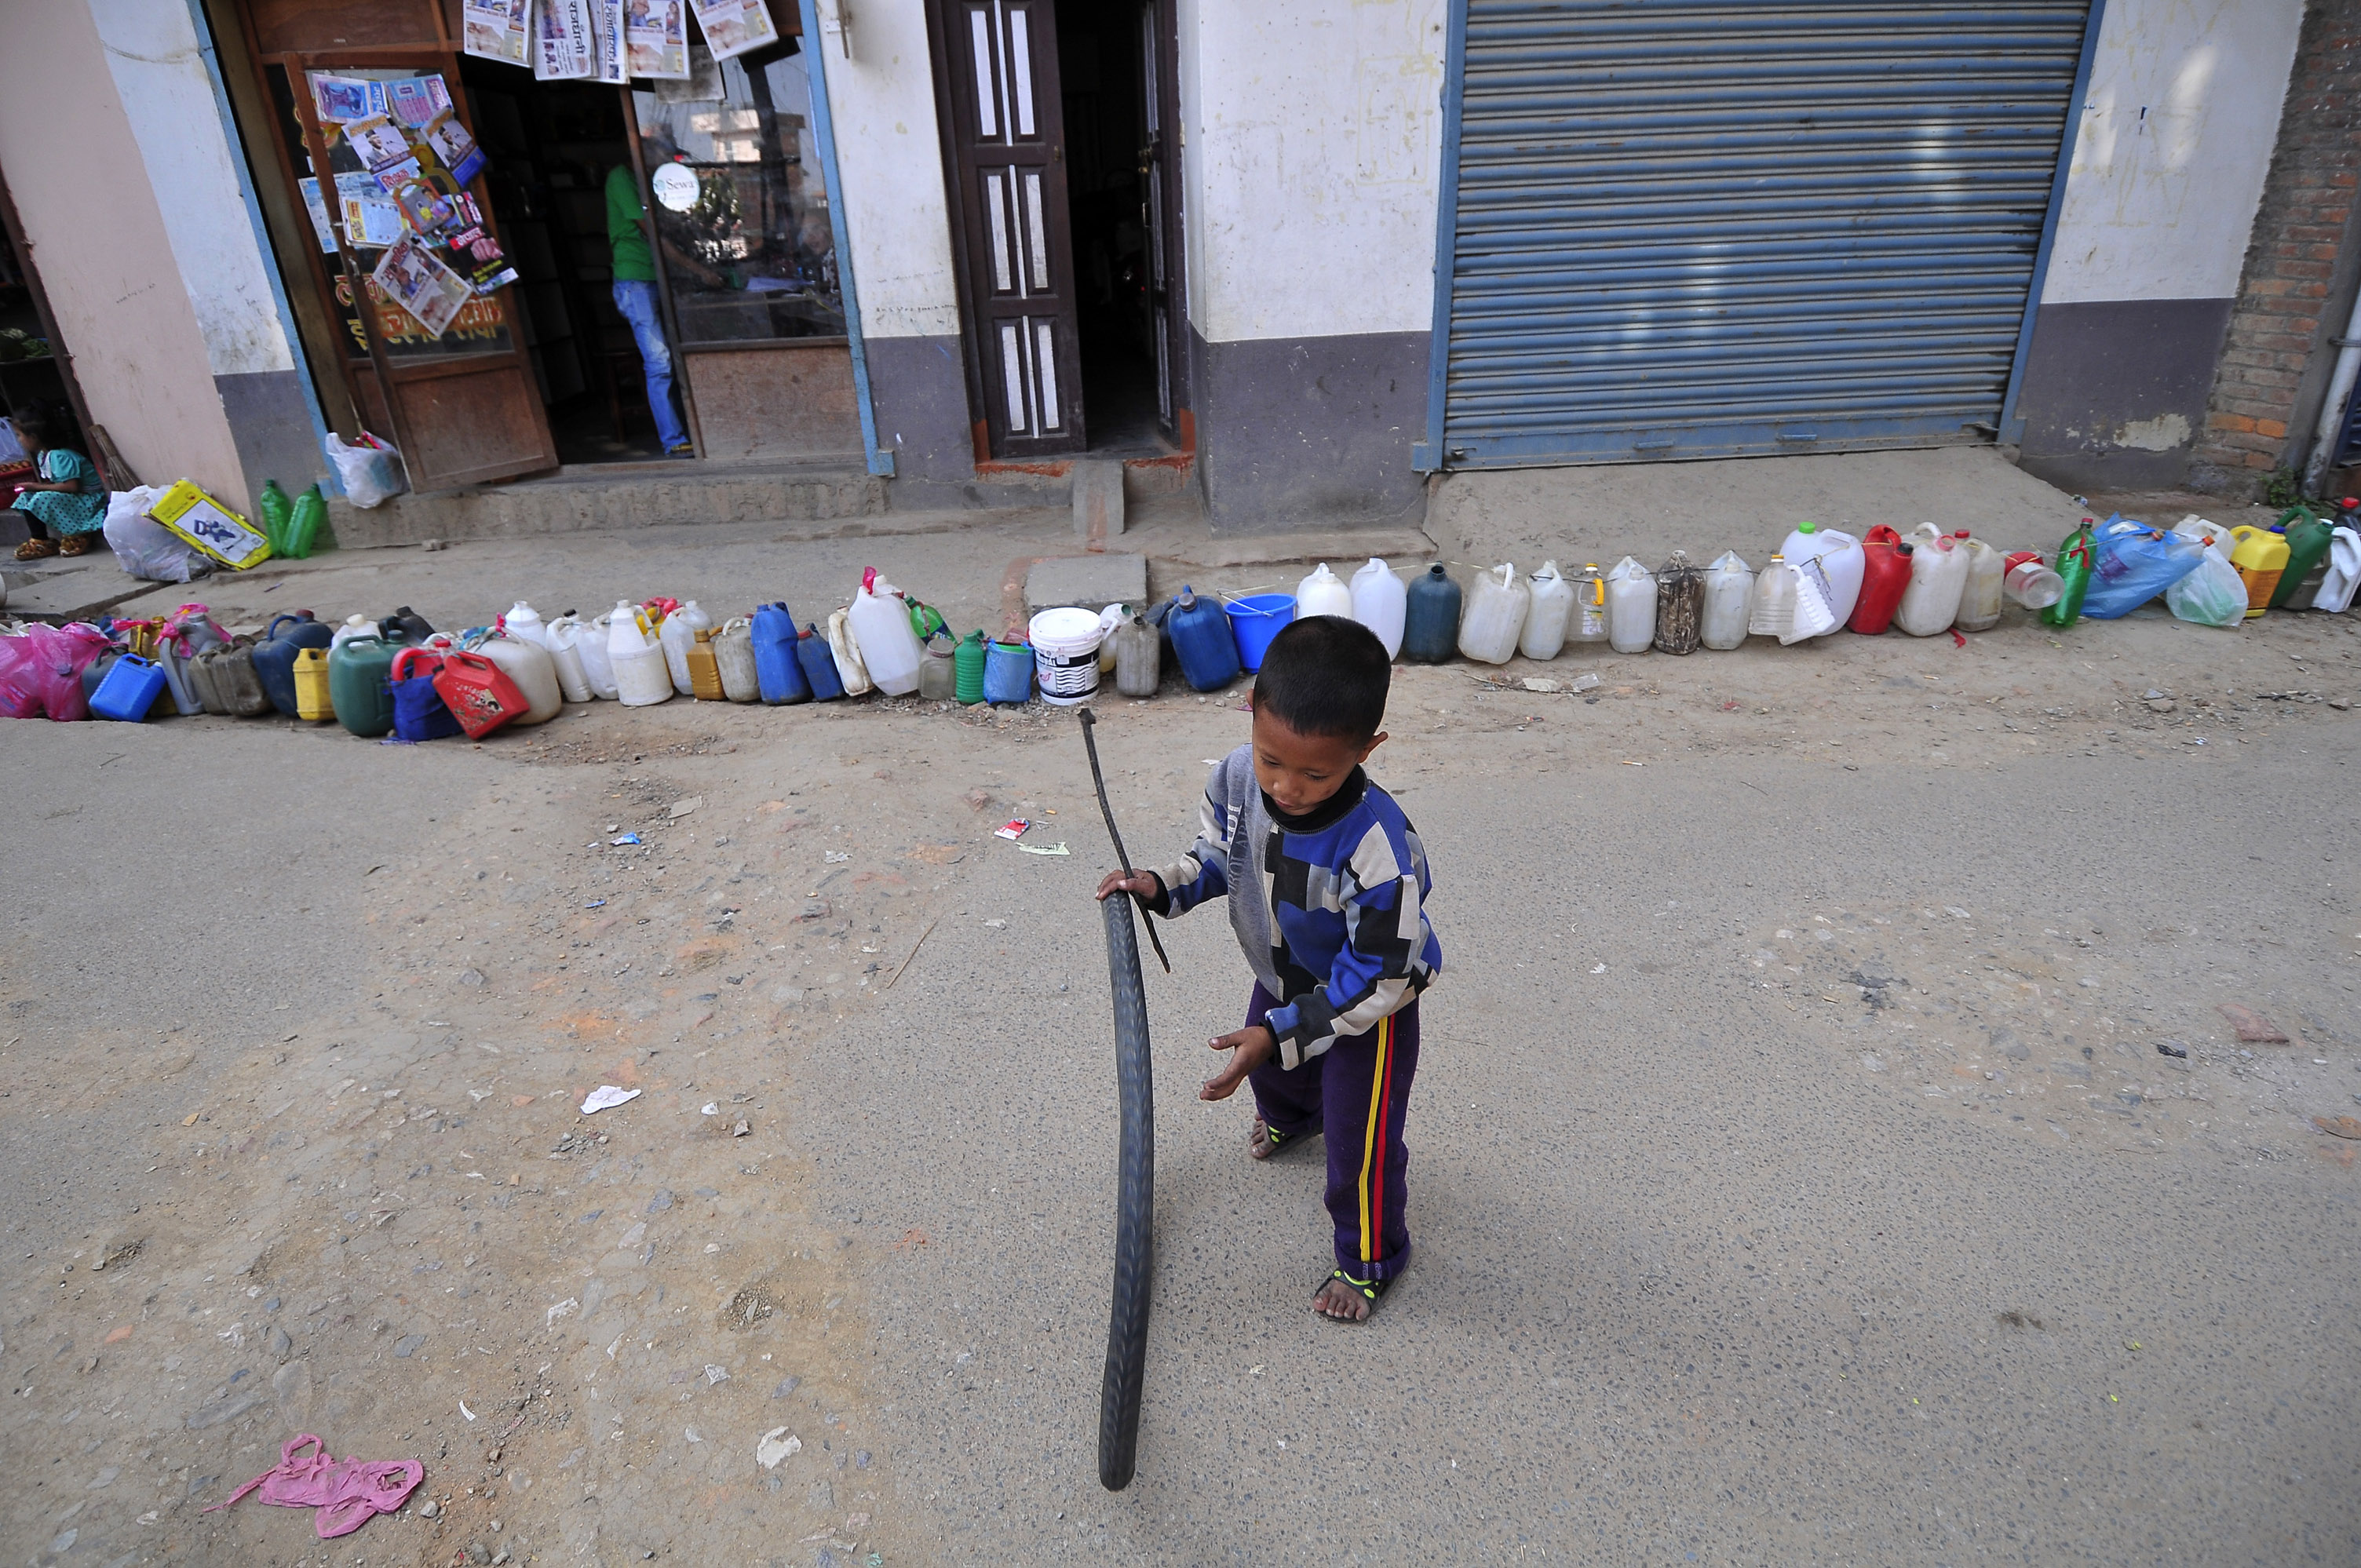 A Nepalese child plays while waiting for his parents' time to buy kerosene. Protests at the border with India have blocked the transportation of fuel and daily commodities to Nepal.